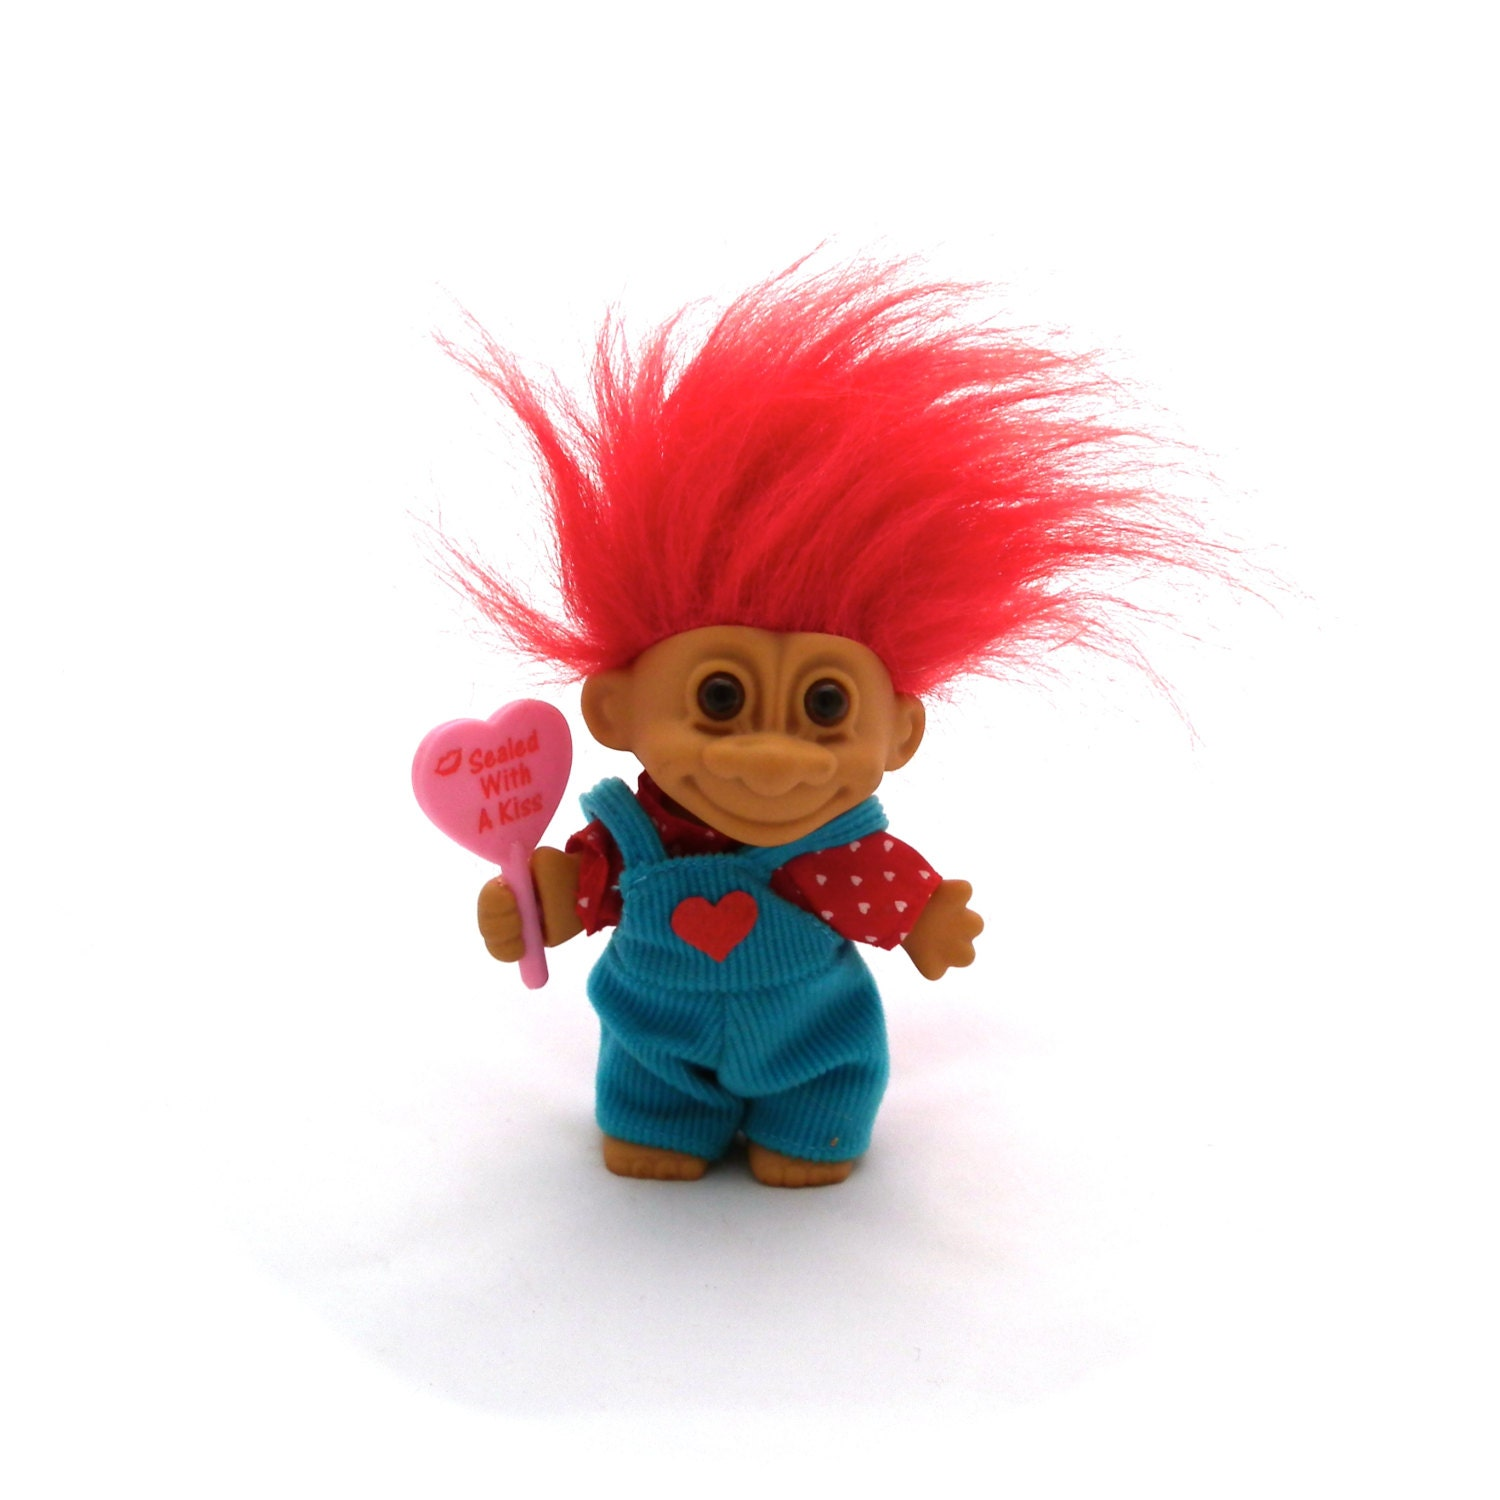 Russ Troll Doll Sealed With A Kiss Valentine Russ Troll Red